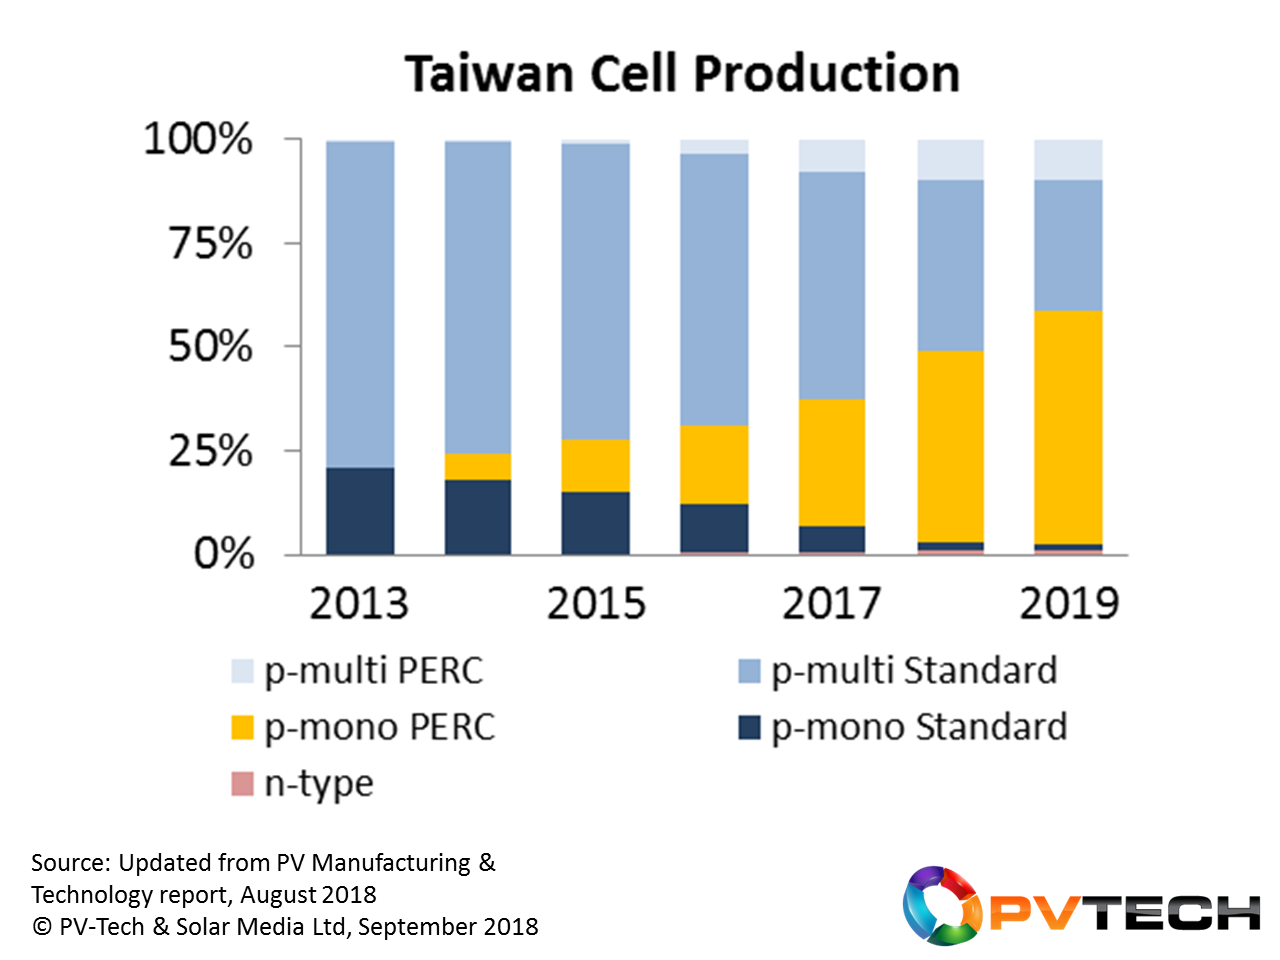 Mono-PERC was introduced in Taiwan during 2014, but will become the dominant cell type during 2019, assuming there is adequate mono wafer supply from China available.